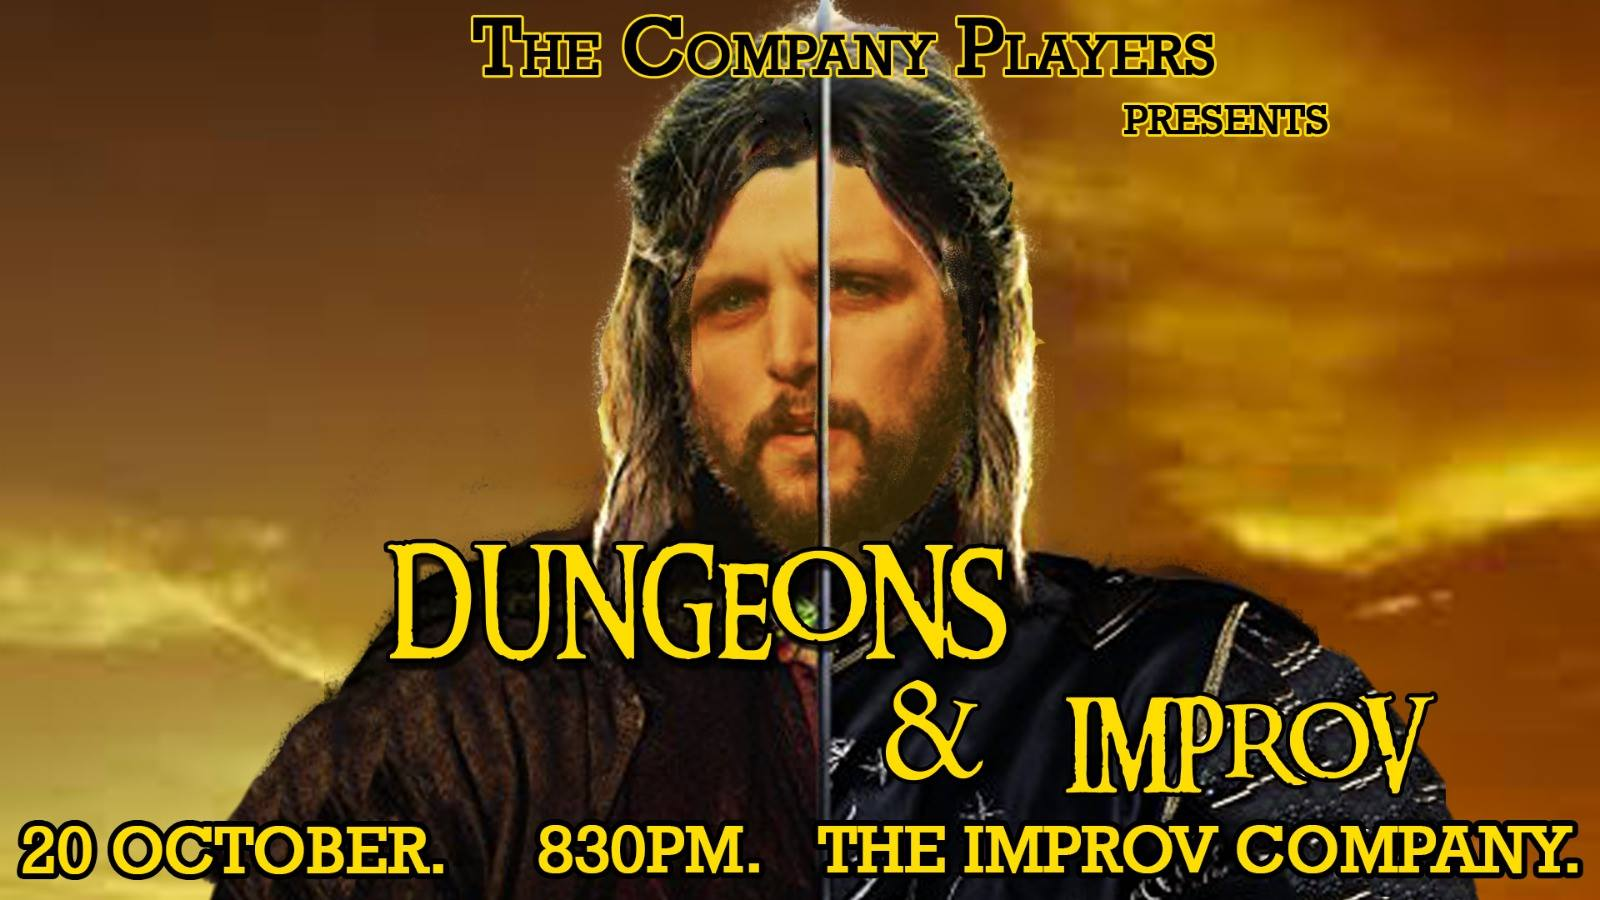 dungeons and dragons improv